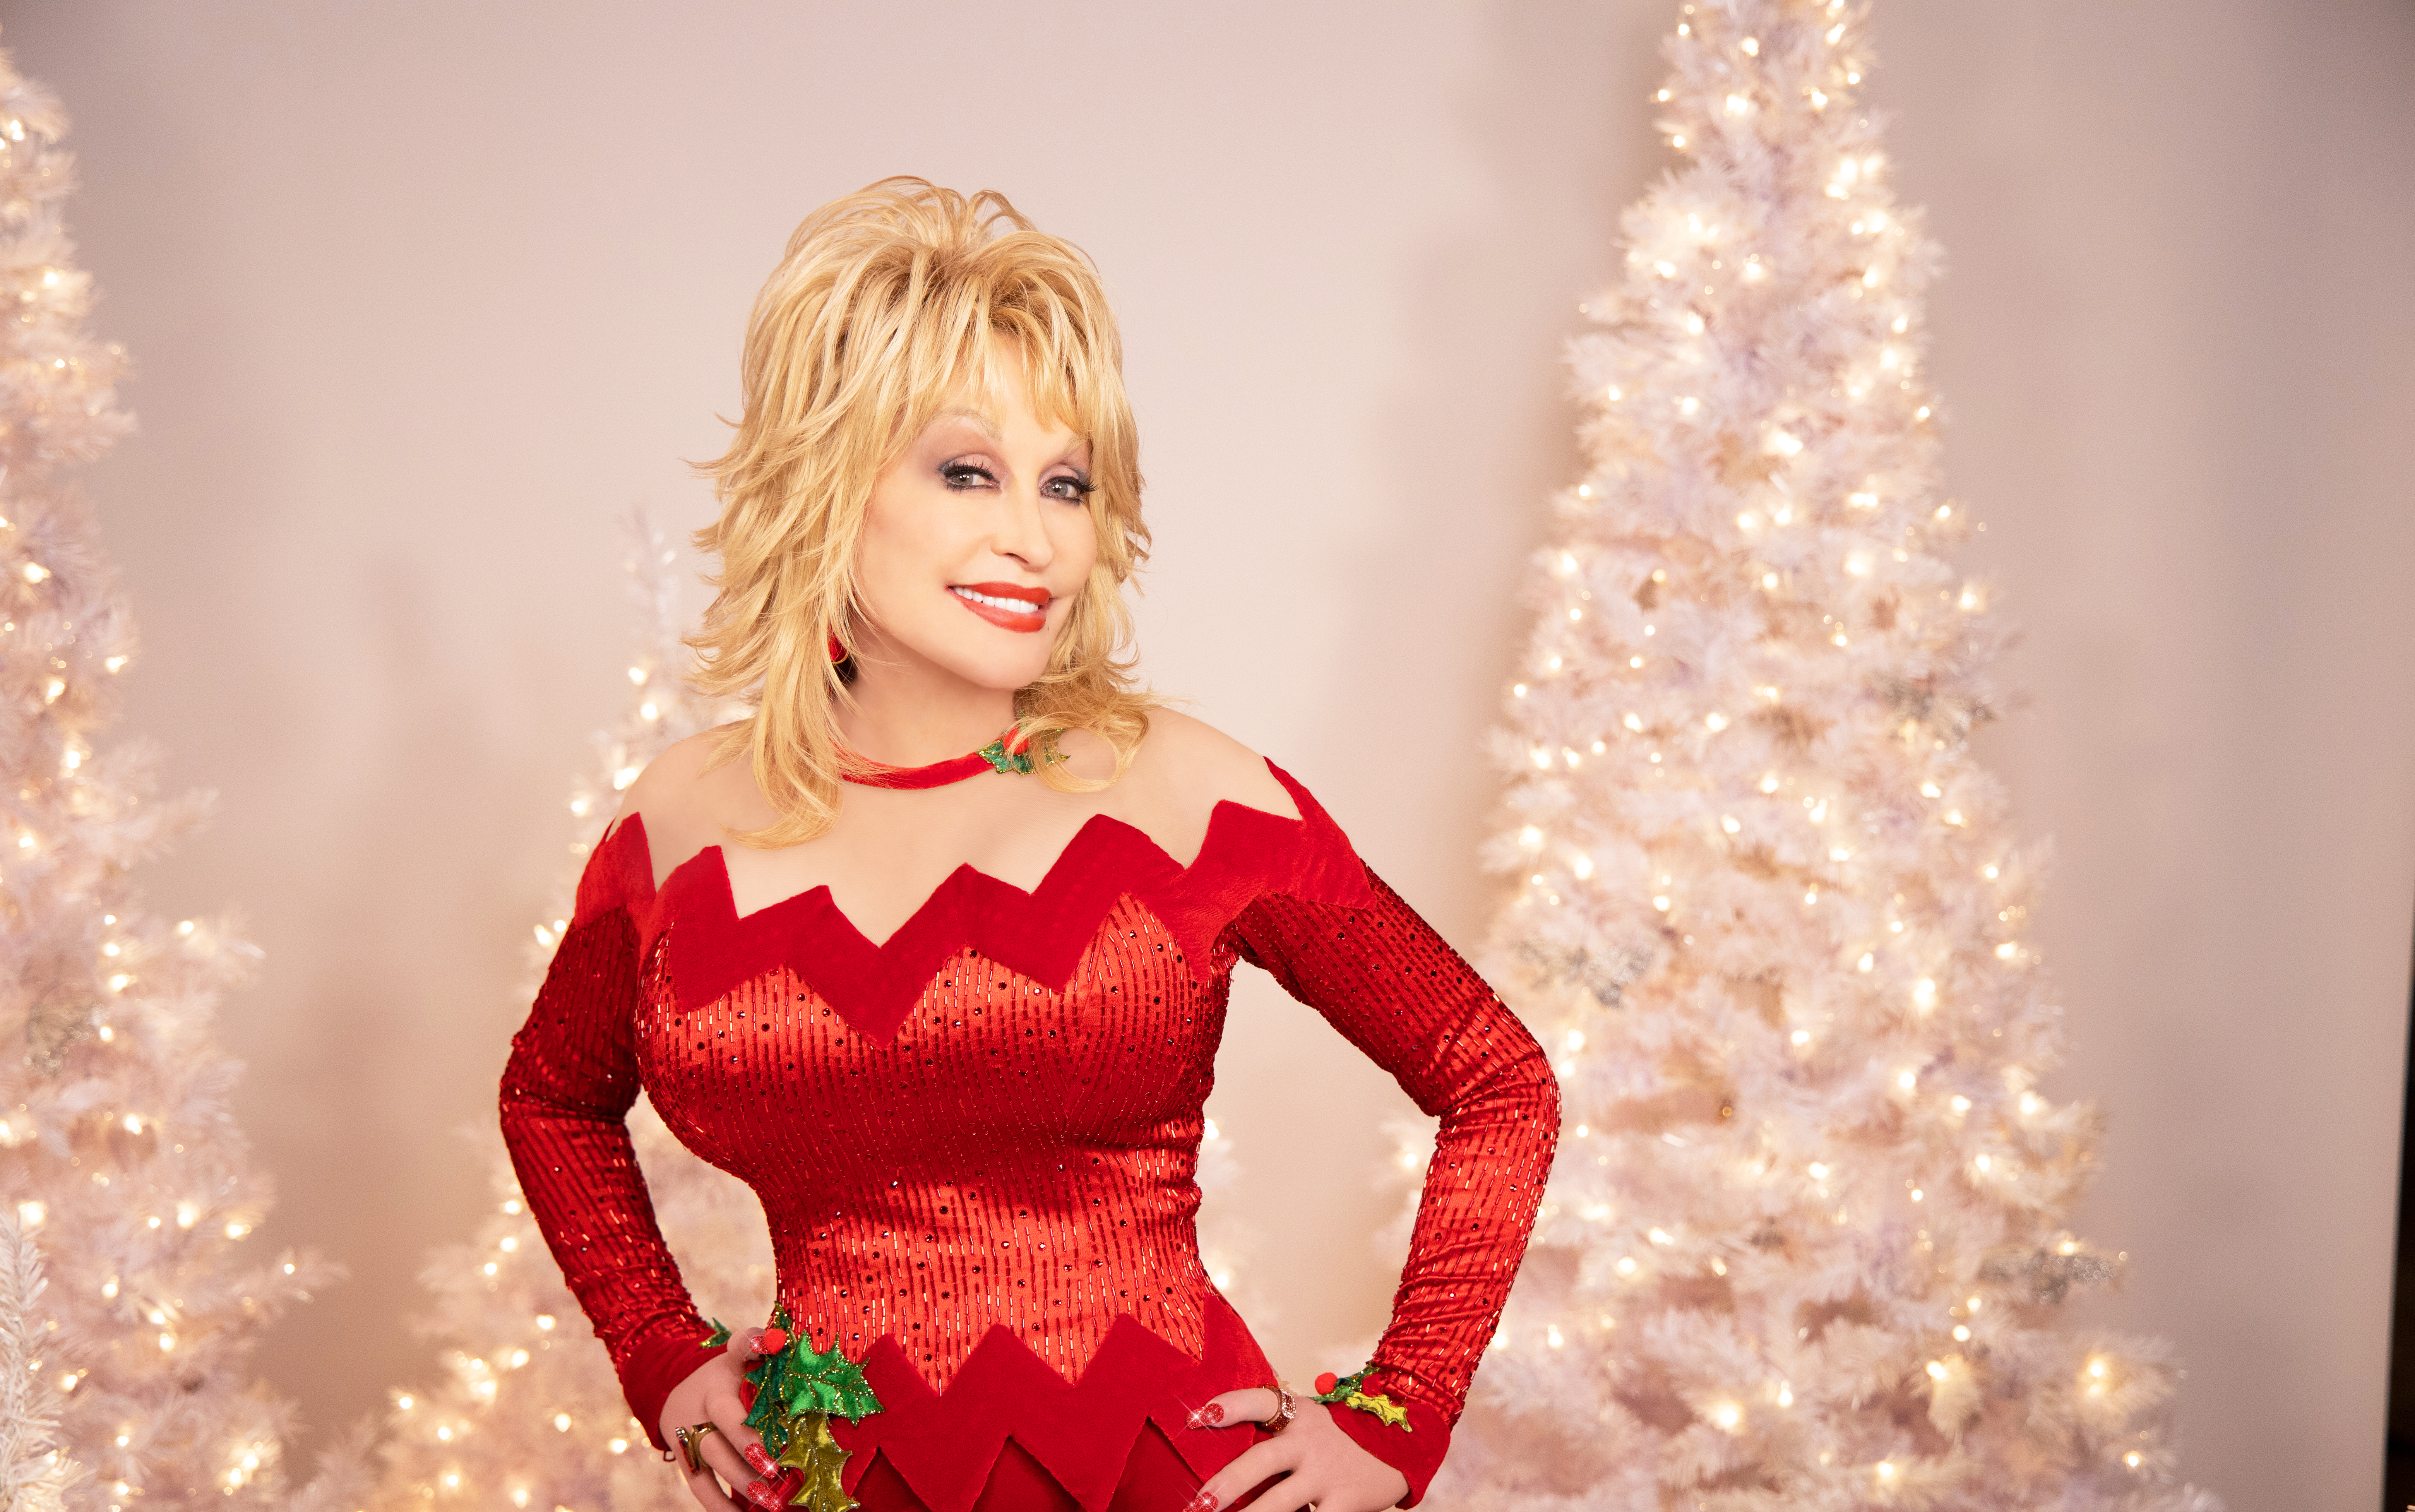 Dolly Parton Red Dress and White Christmas Tree